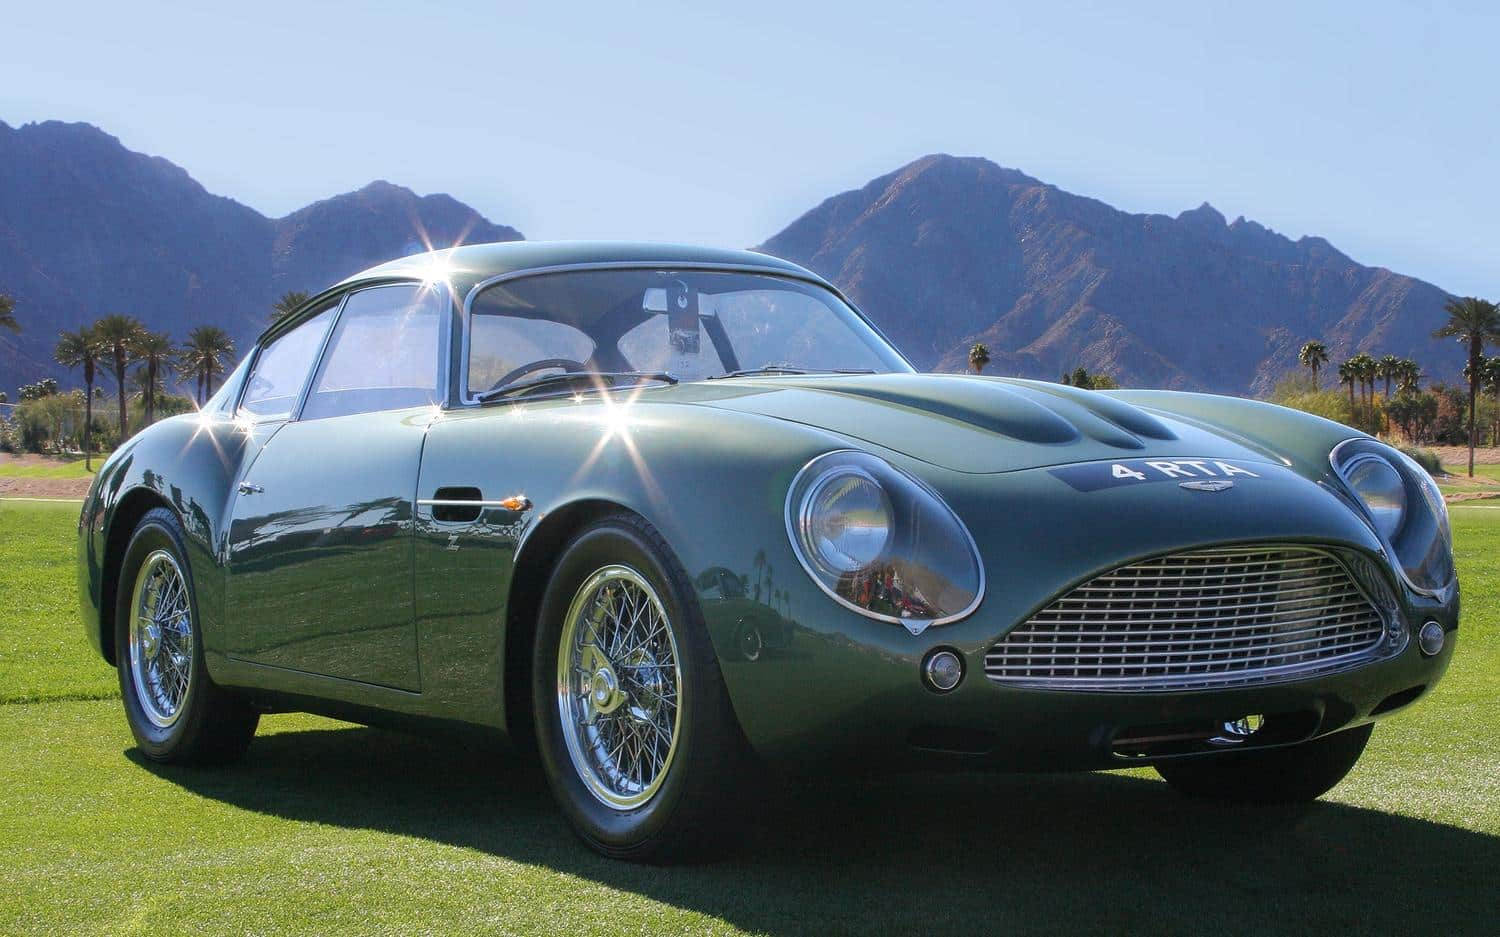 Aston Martin DB4 GT Zagato - definitely a sexy sixties sports car